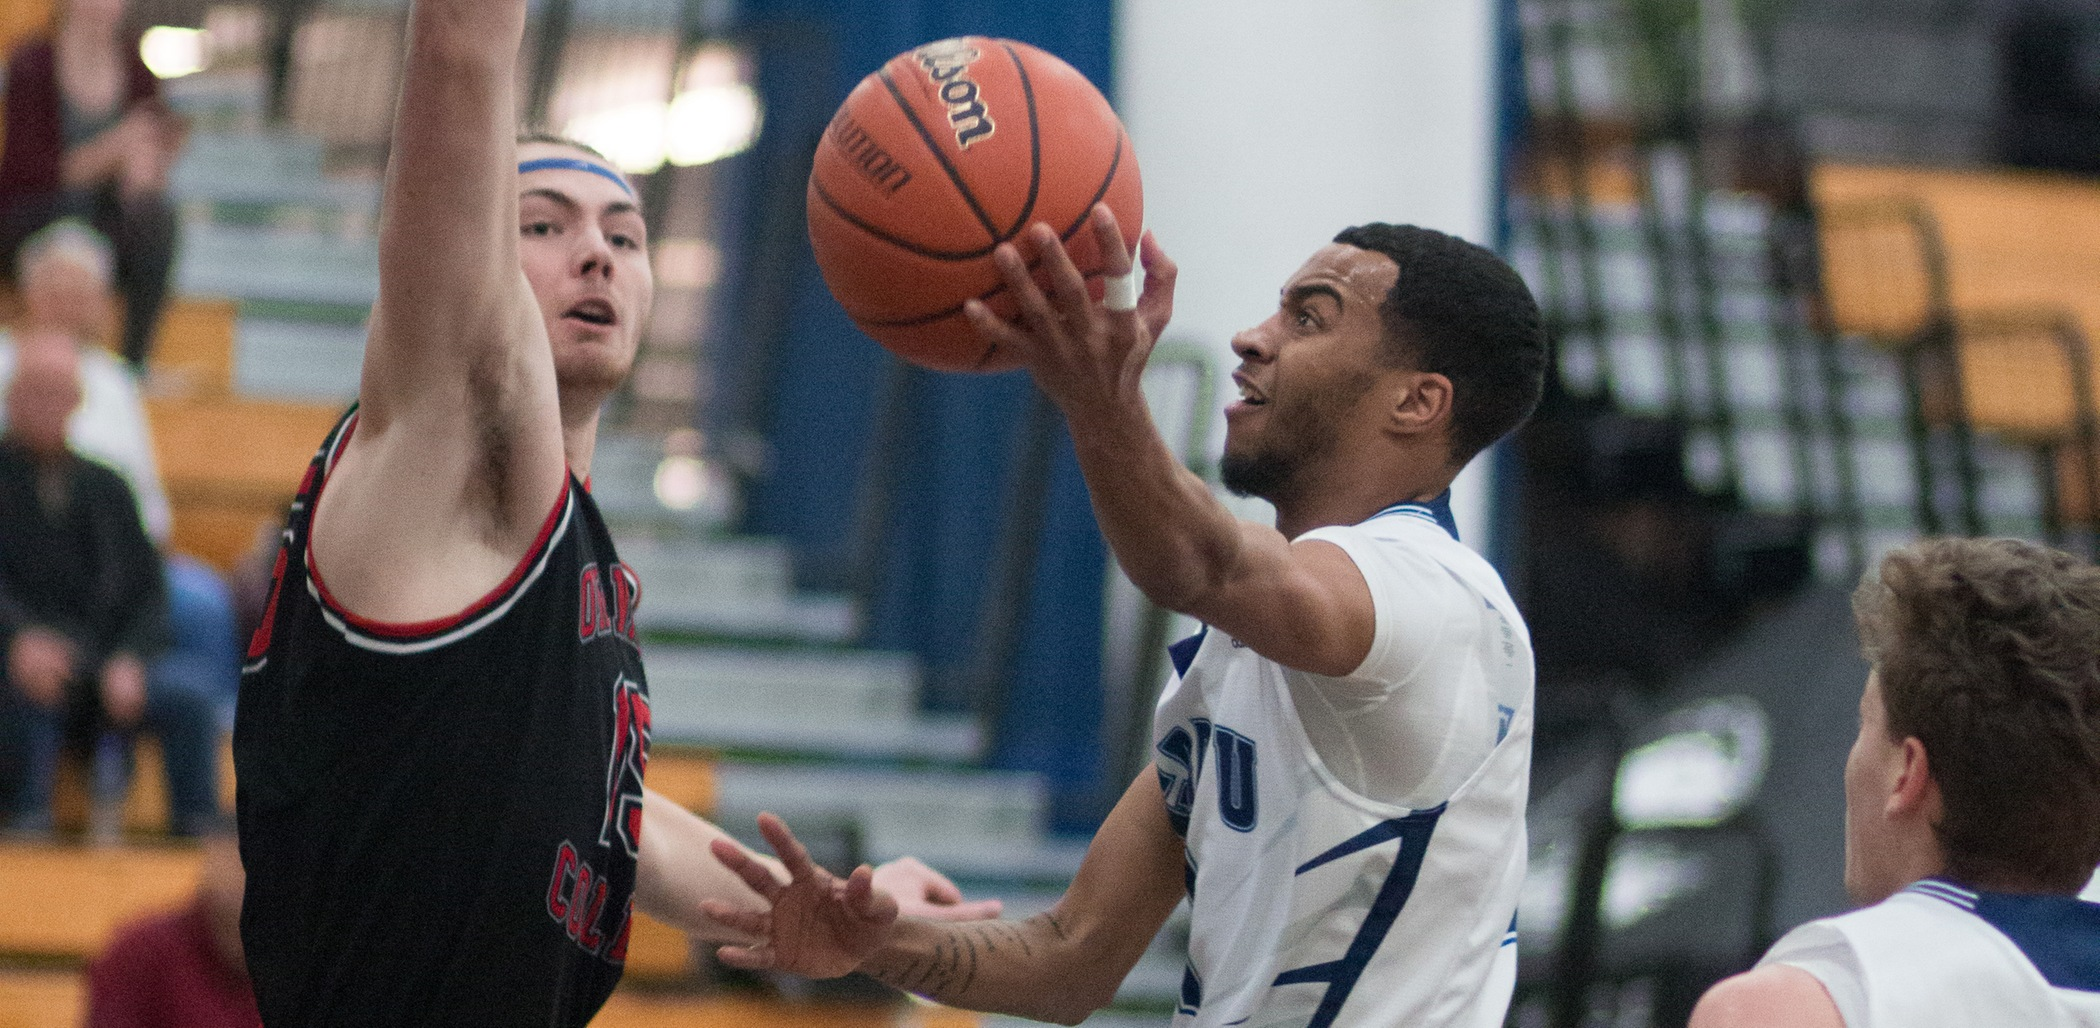 Brenden Bailey had 29 points and was named Player of the Game for CapU. Photo courtesy Douglas College